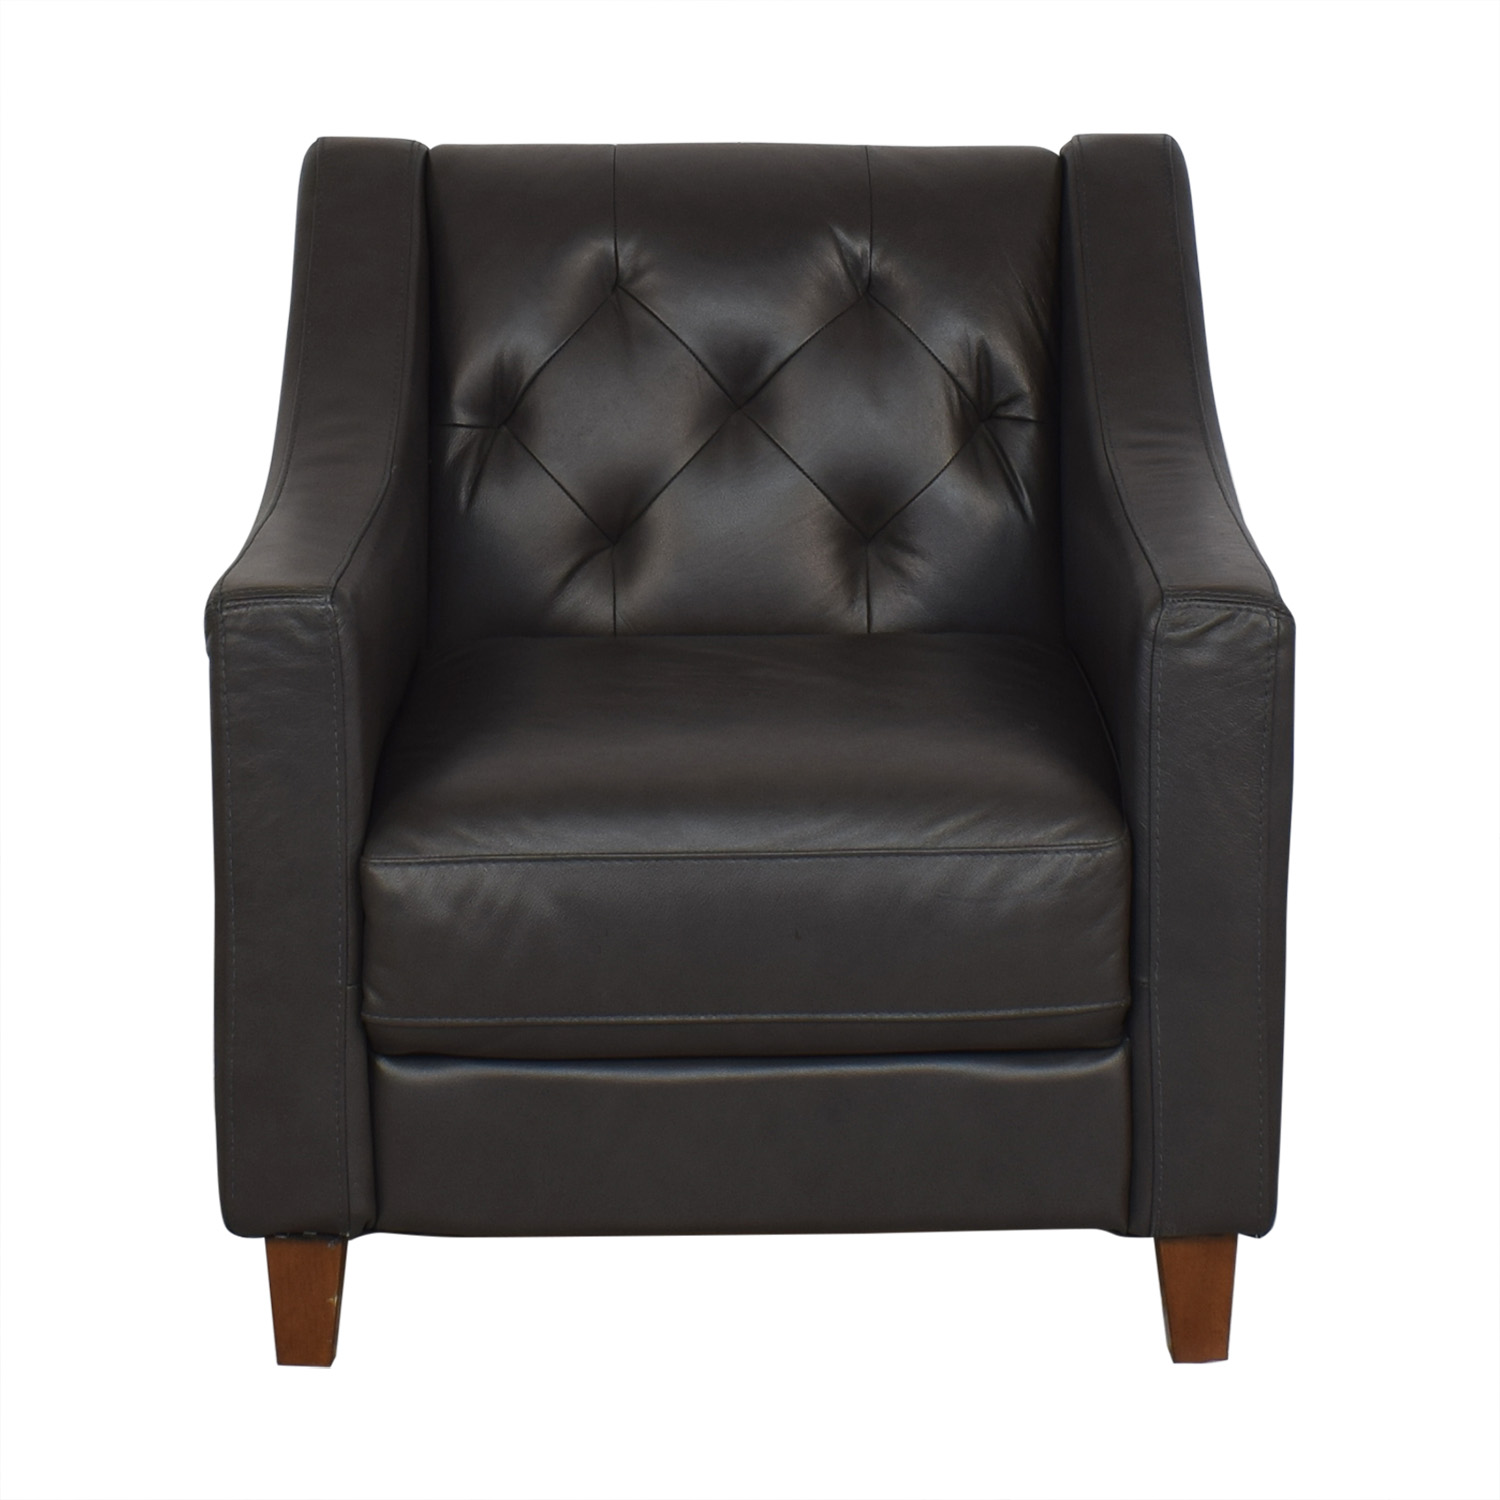 Macy's Macy's Tufted Armchair coupon